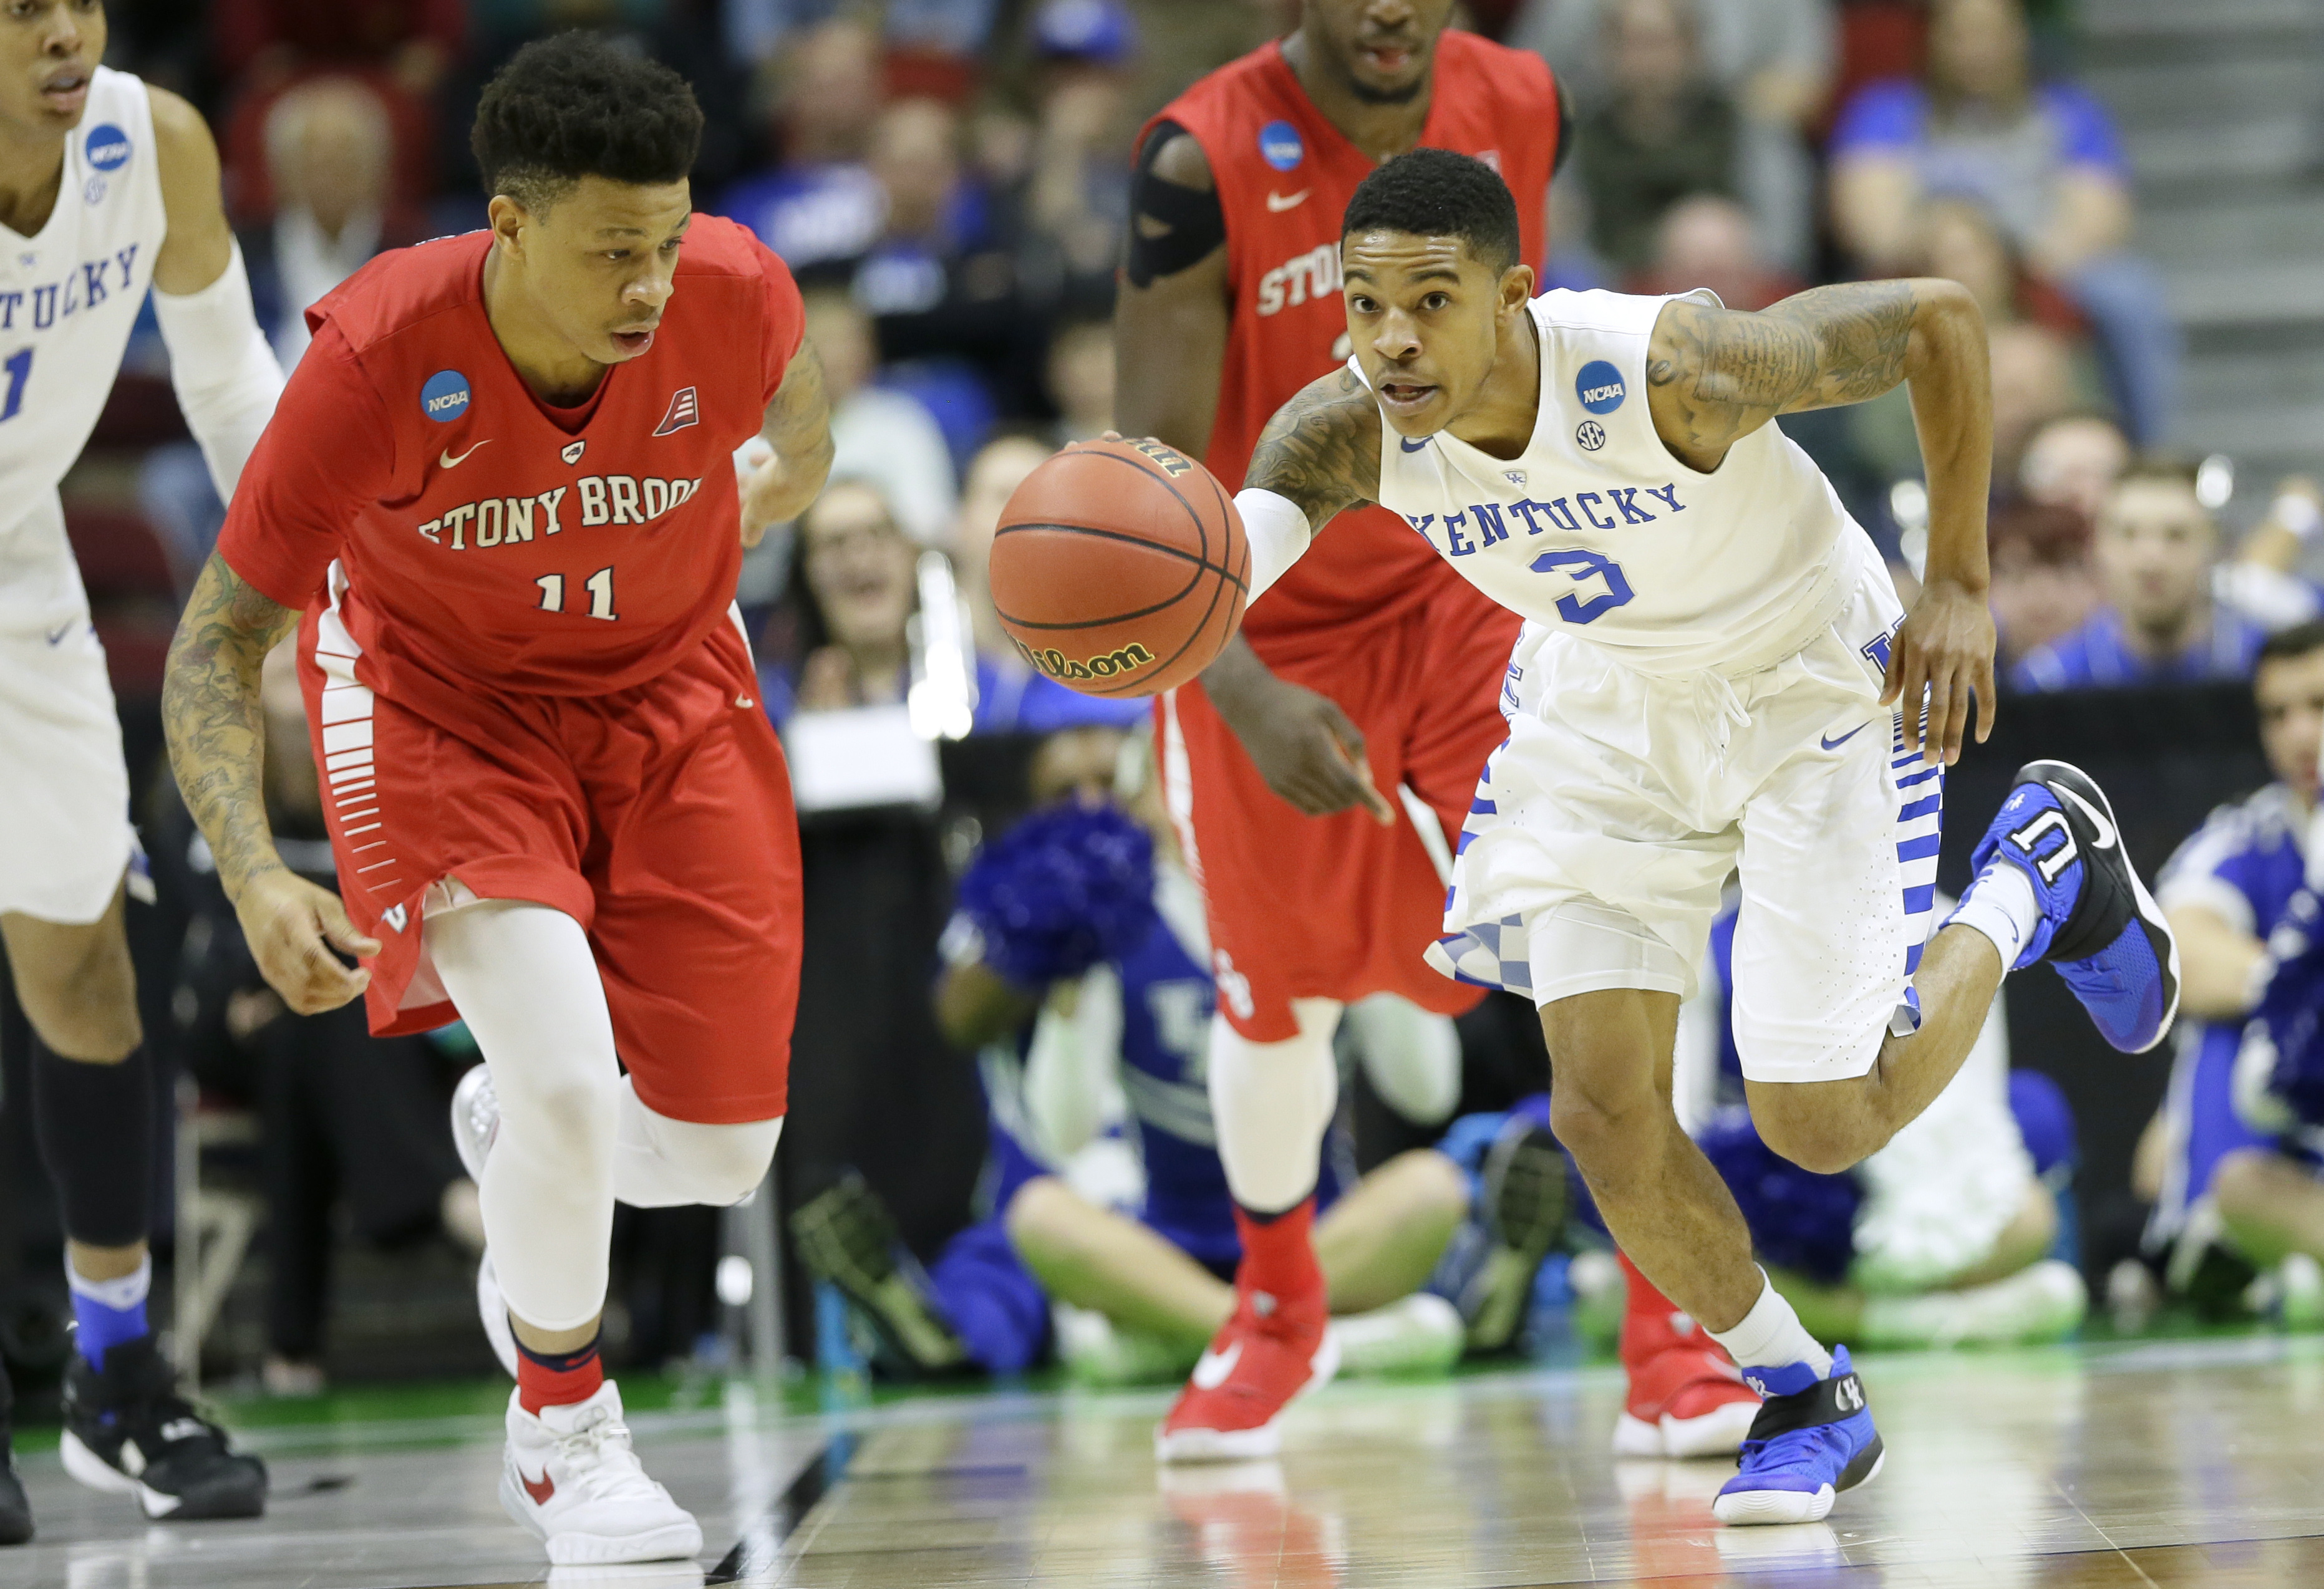 Kentucky guard Tyler Ulis drives upcourt past Stony Brook forward Rayshaun McGrew, left, during the first half of a first-round men's college basketball game in the NCAA Tournament, Thursday, March 17, 2016, in Des Moines, Iowa. (AP Photo/Charlie Neiberga